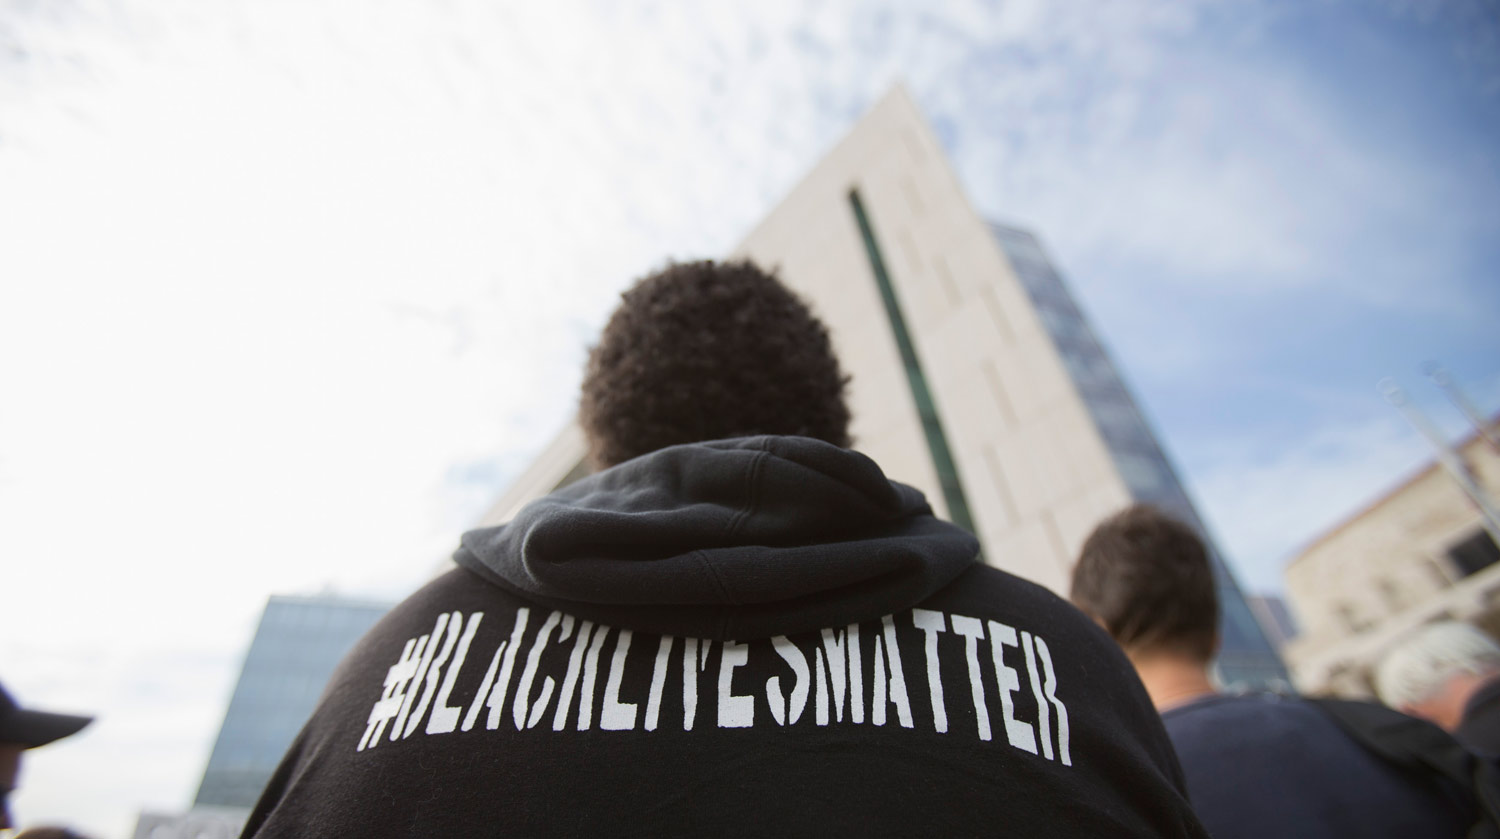 There's-No-BlackLivesMatter-Without-Net-Neutrality